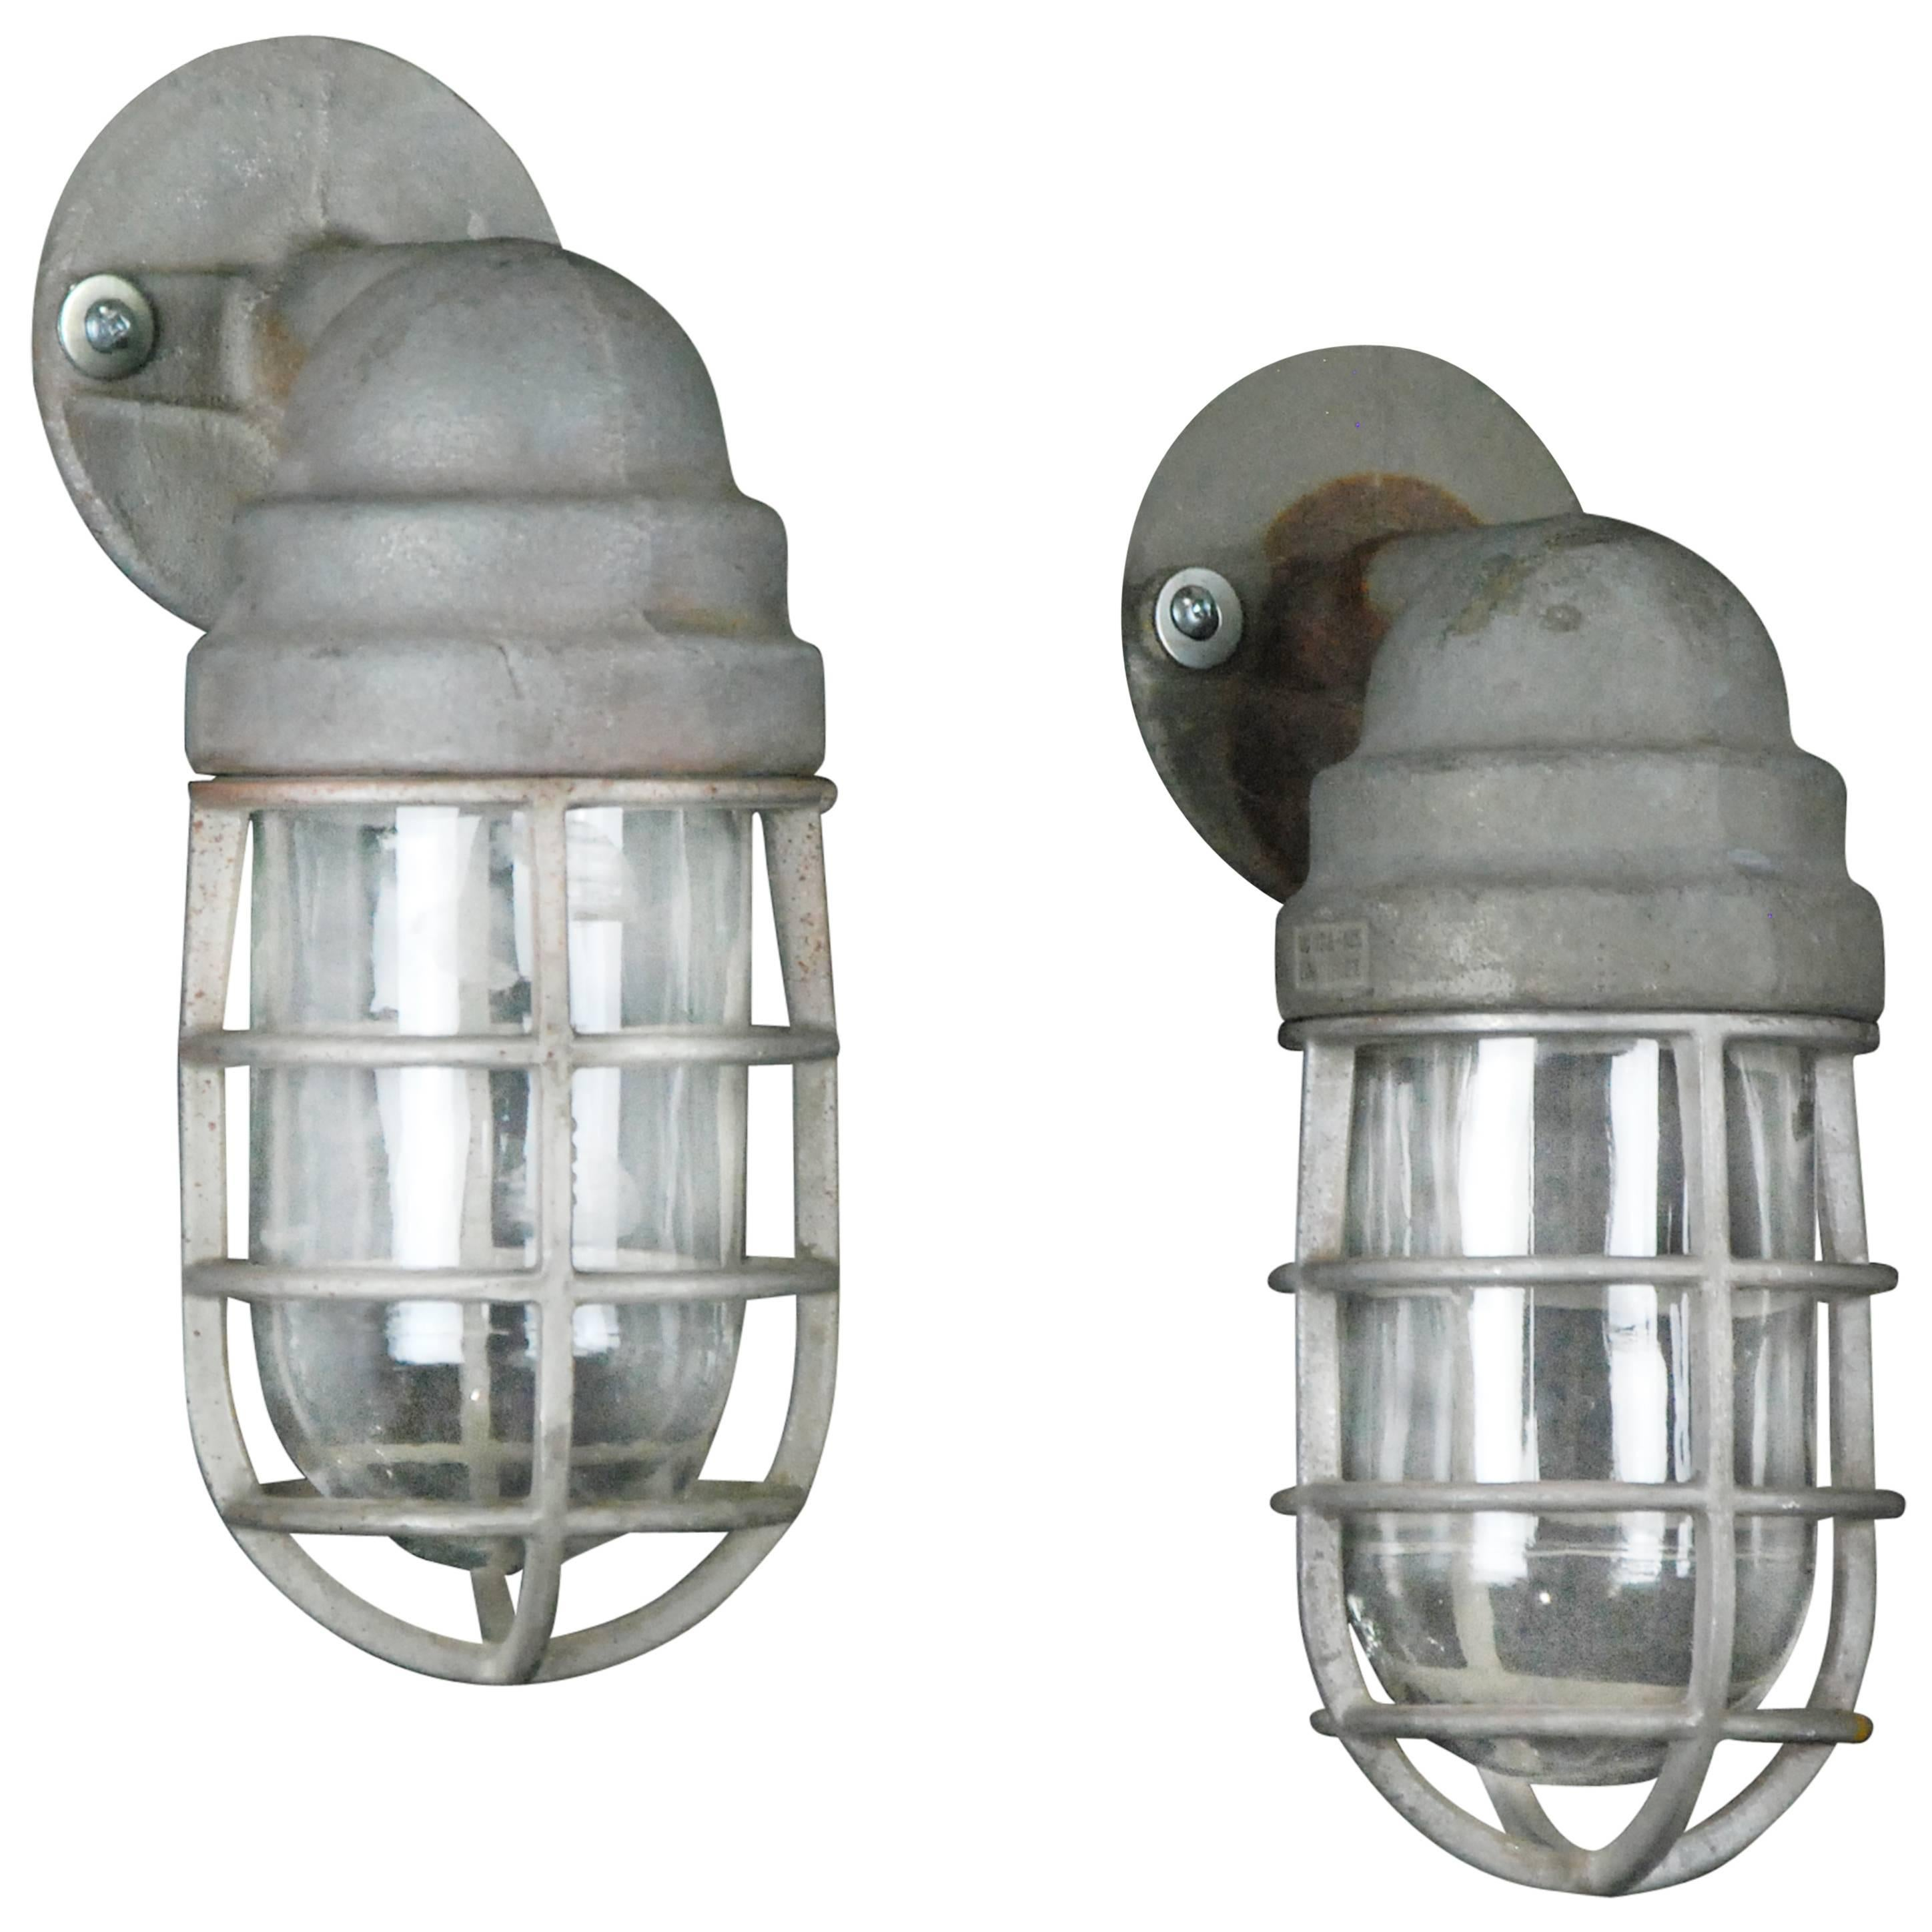 1940 pair of crouse hinds industrial wall sconce lighting for sale 1940 pair of crouse hinds industrial wall sconce lighting for sale at 1stdibs arubaitofo Choice Image